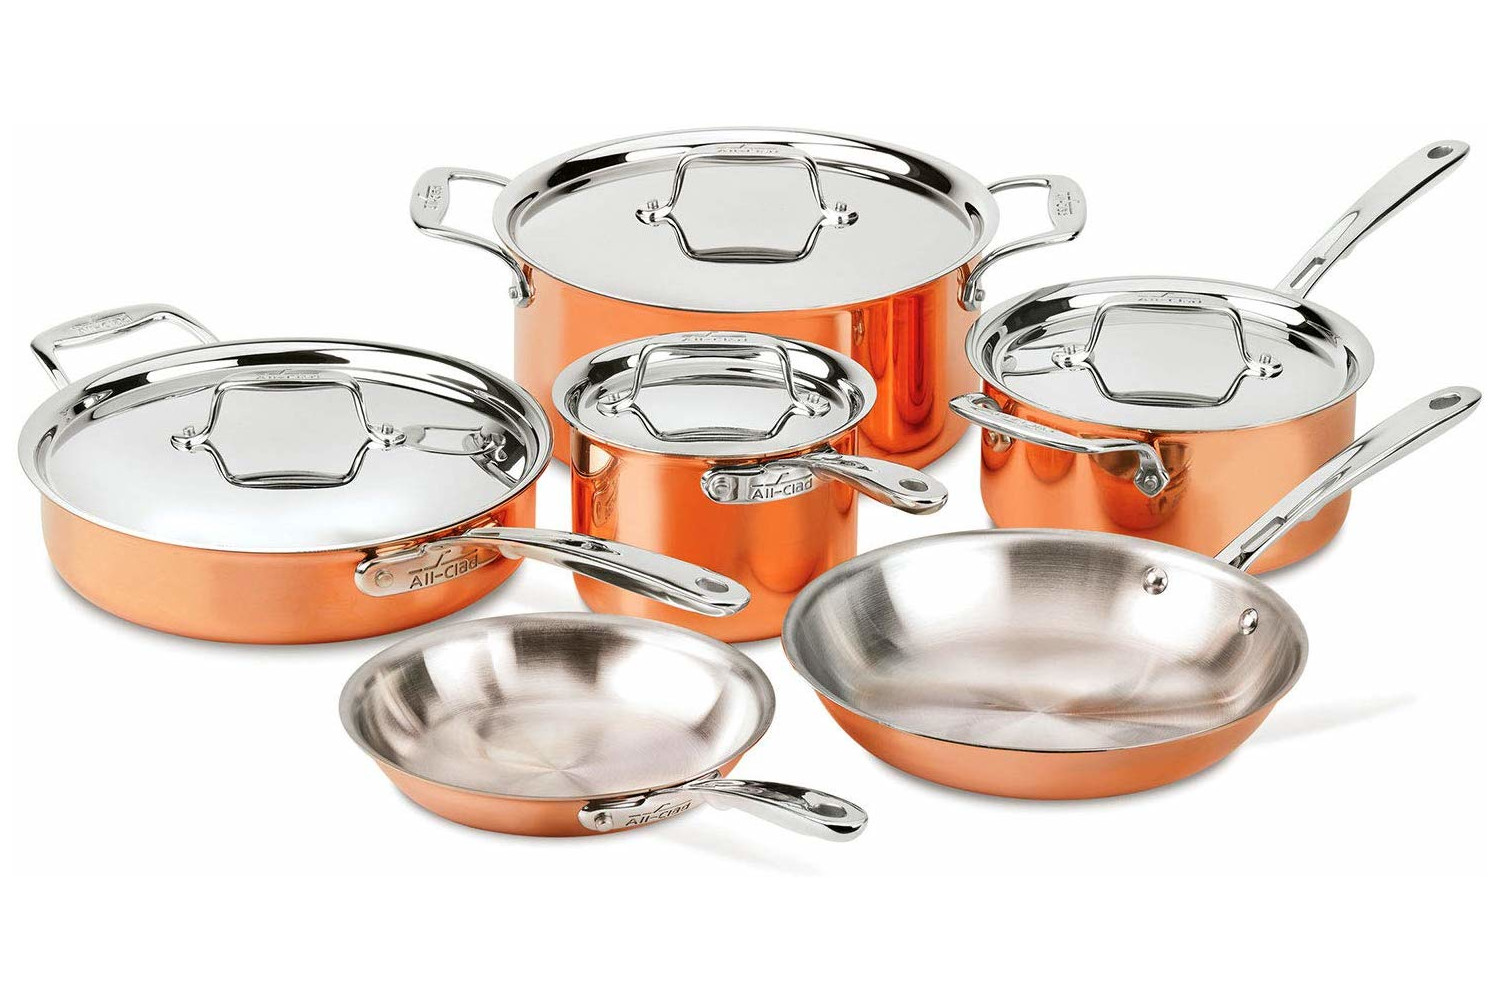 All-Clad c4 Copper 10 Piece Cookware Set